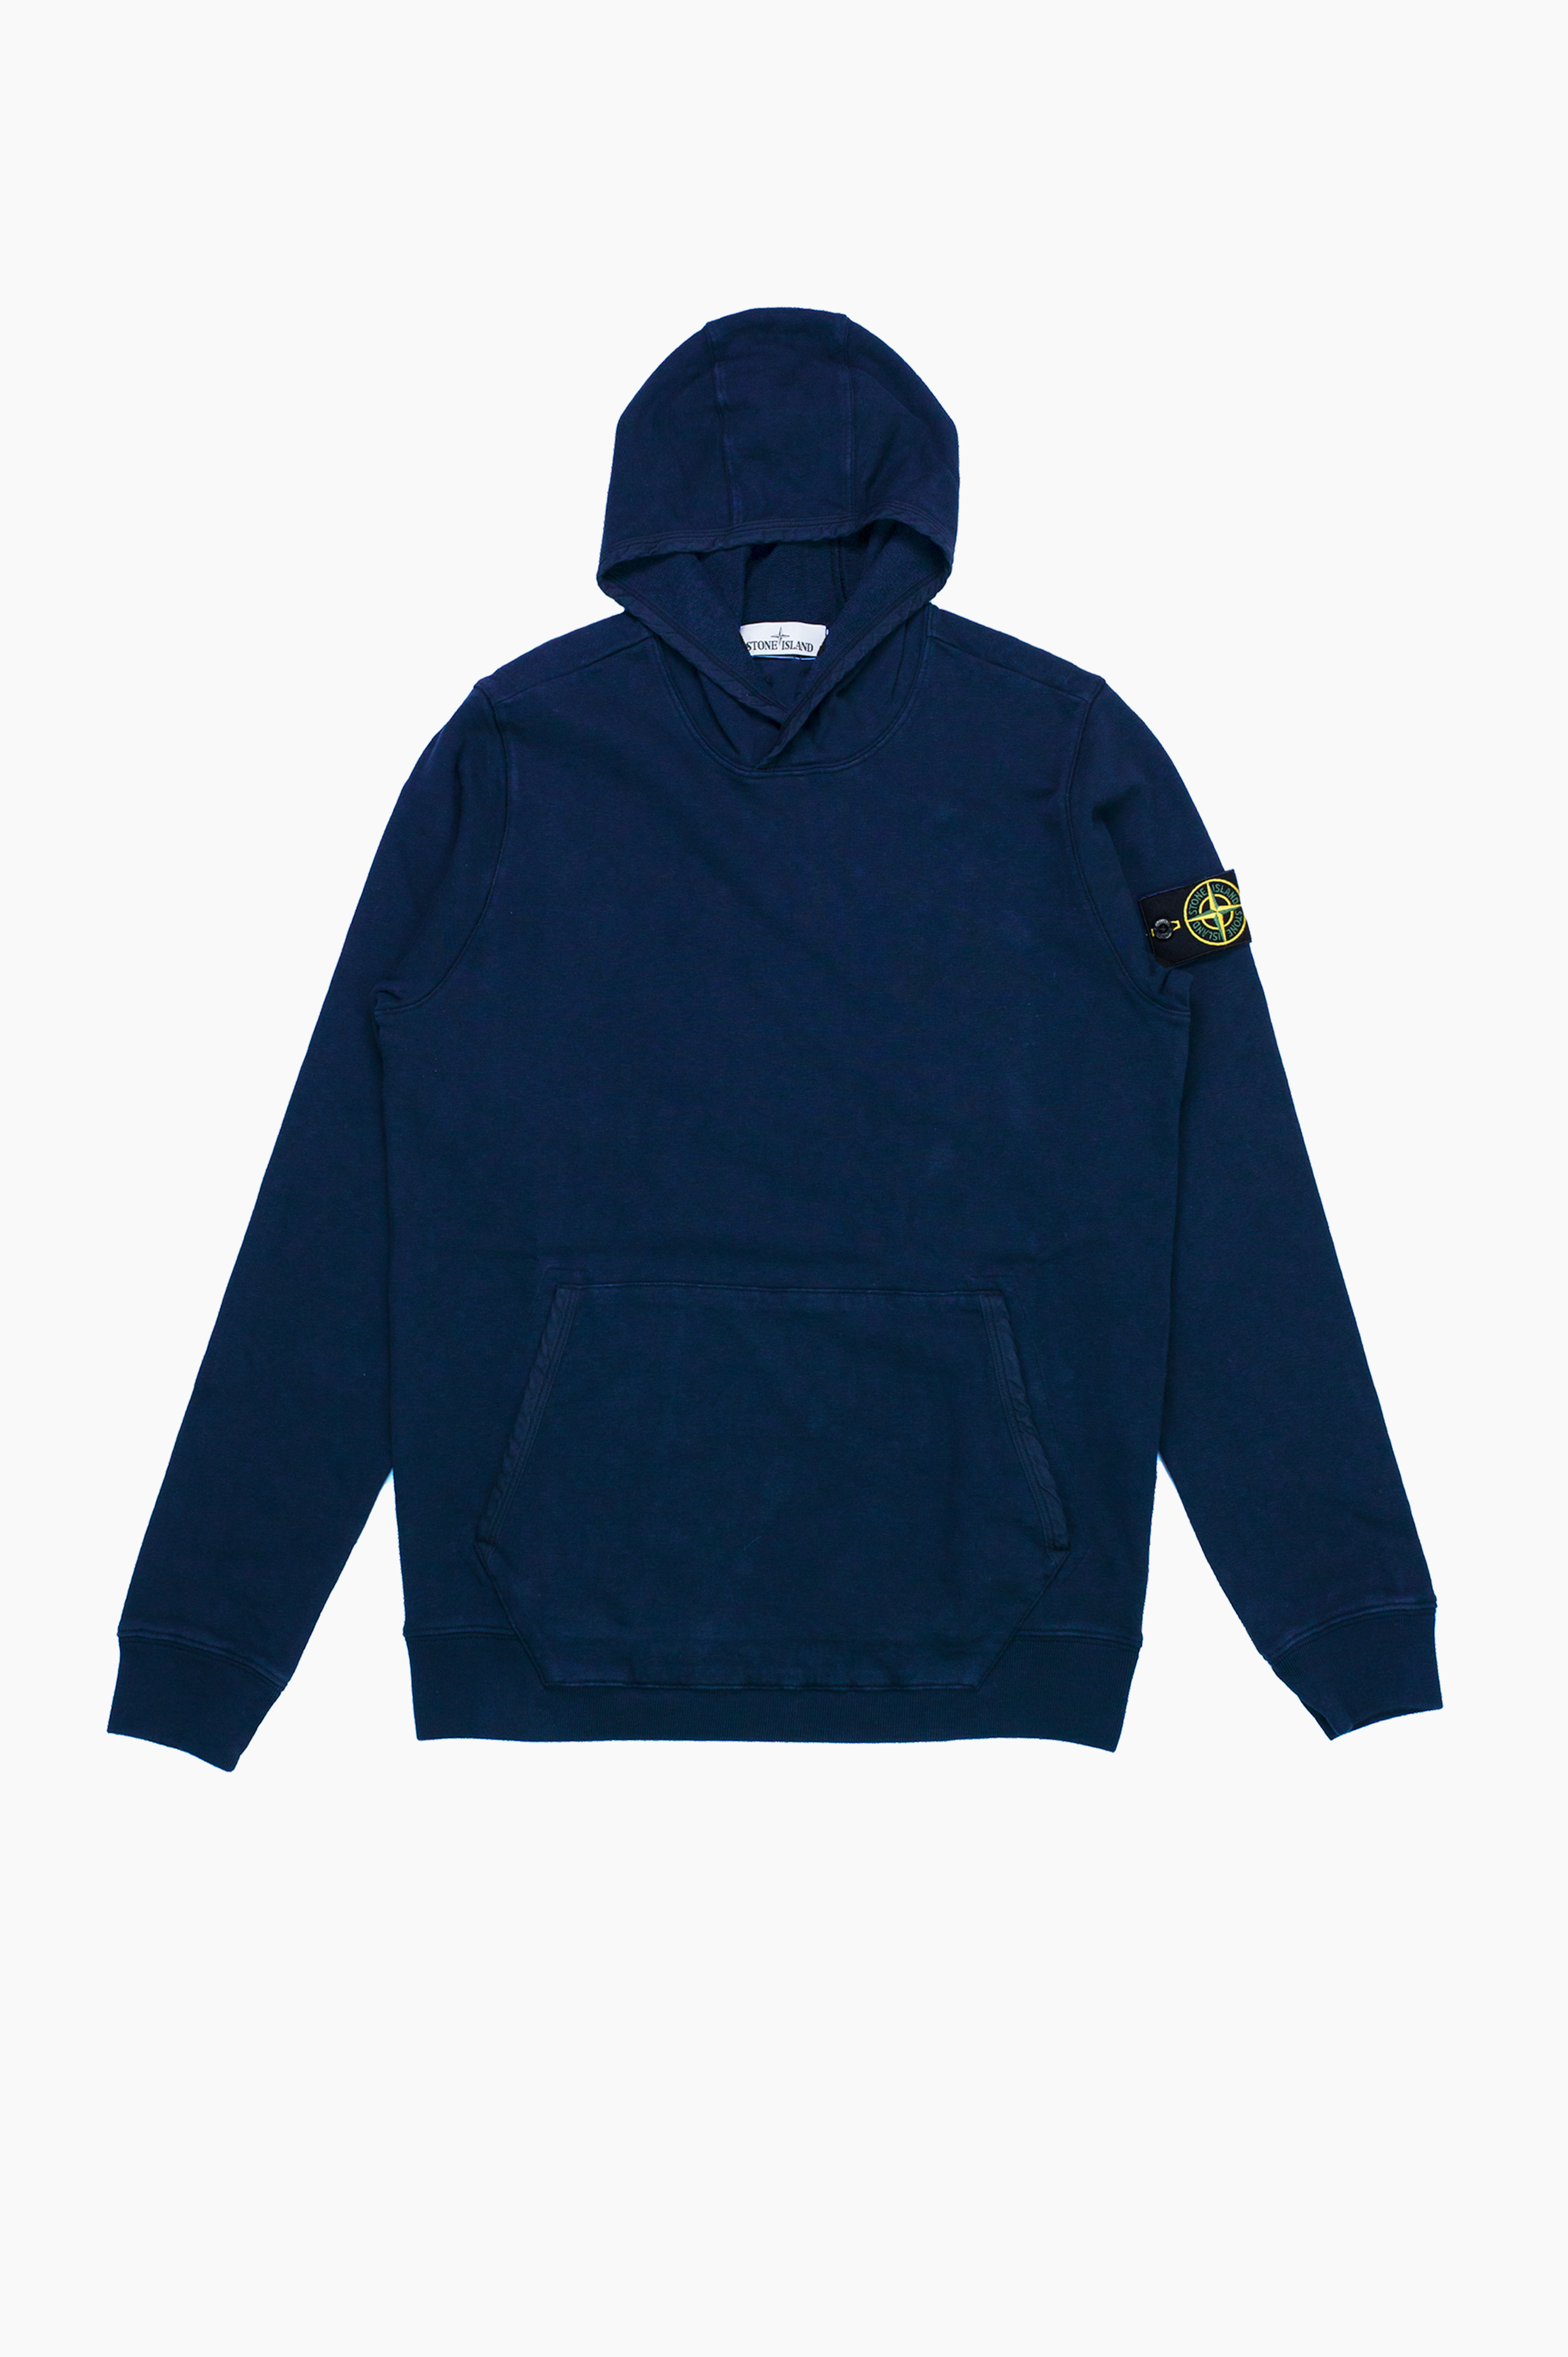 'Old' Dye Treatment Hooded Sweatshirt Blue